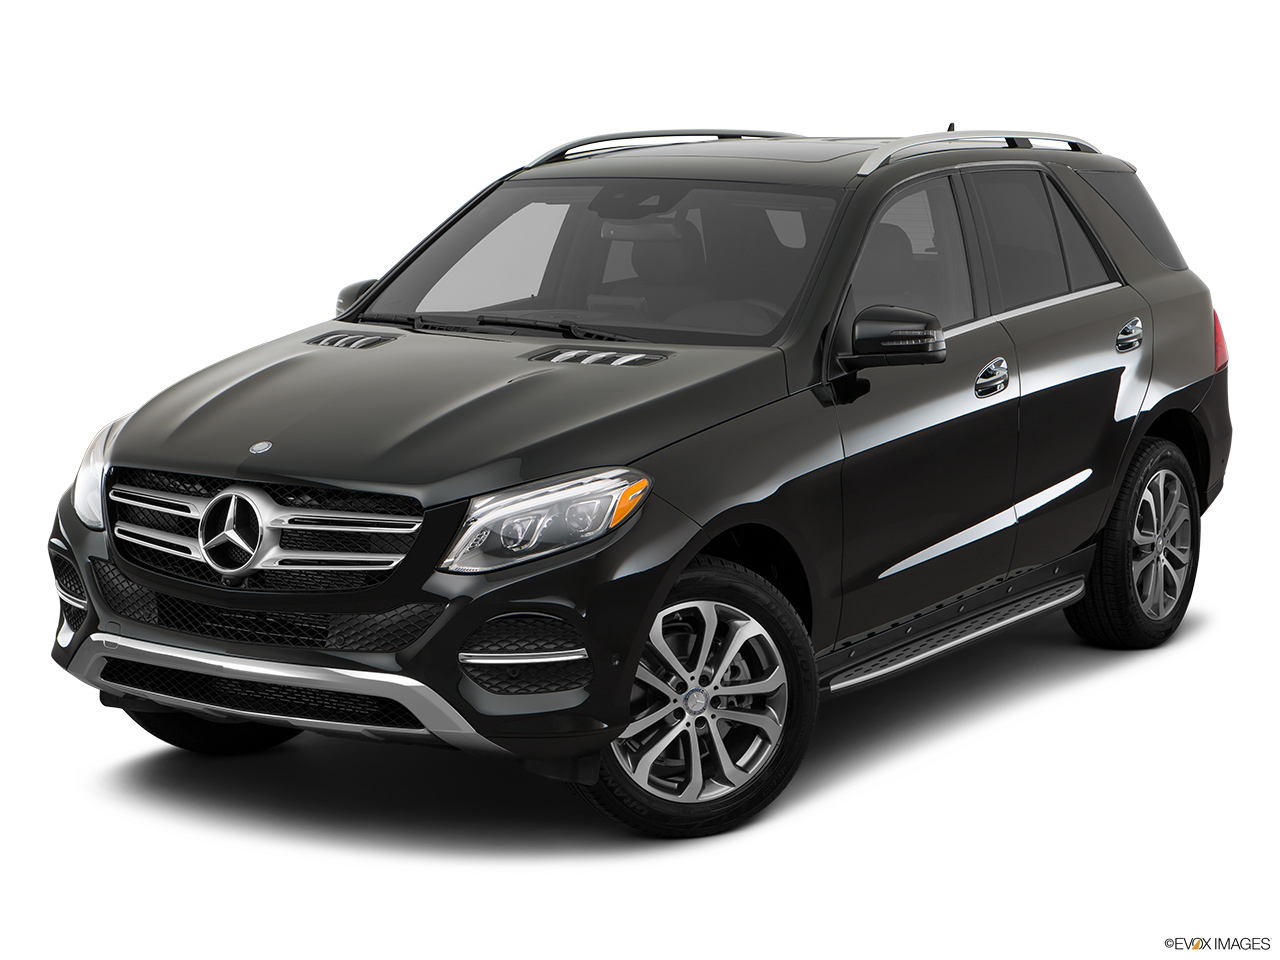 2017 mercedes benz gle class prices in saudi arabia gulf specs reviews for riyadh jeddah. Black Bedroom Furniture Sets. Home Design Ideas